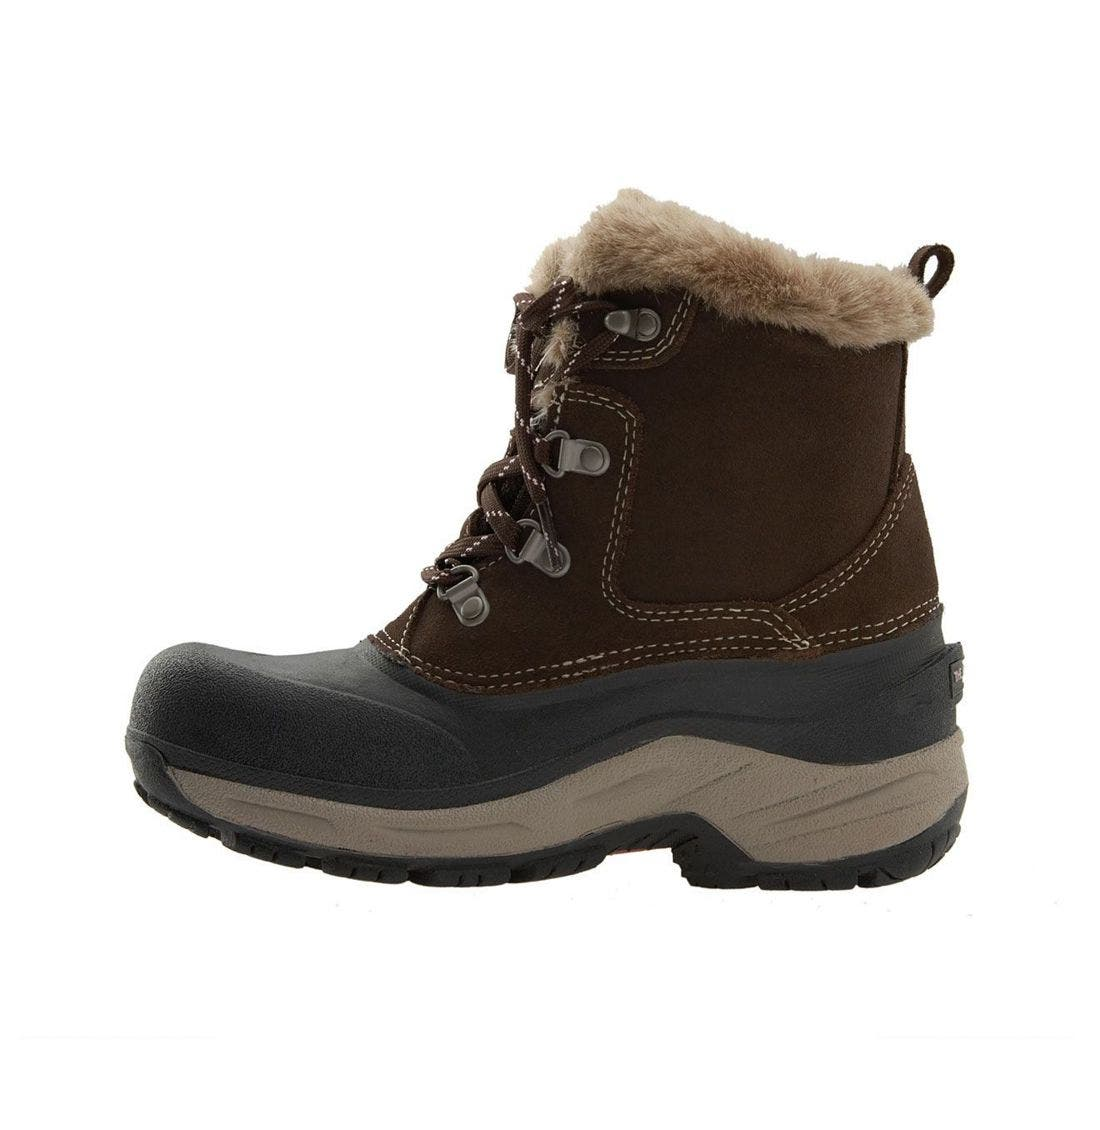 Alternate Image 2  - The North Face 'McMurdo' Boot (Toddler, Little Kid & Big Kid)